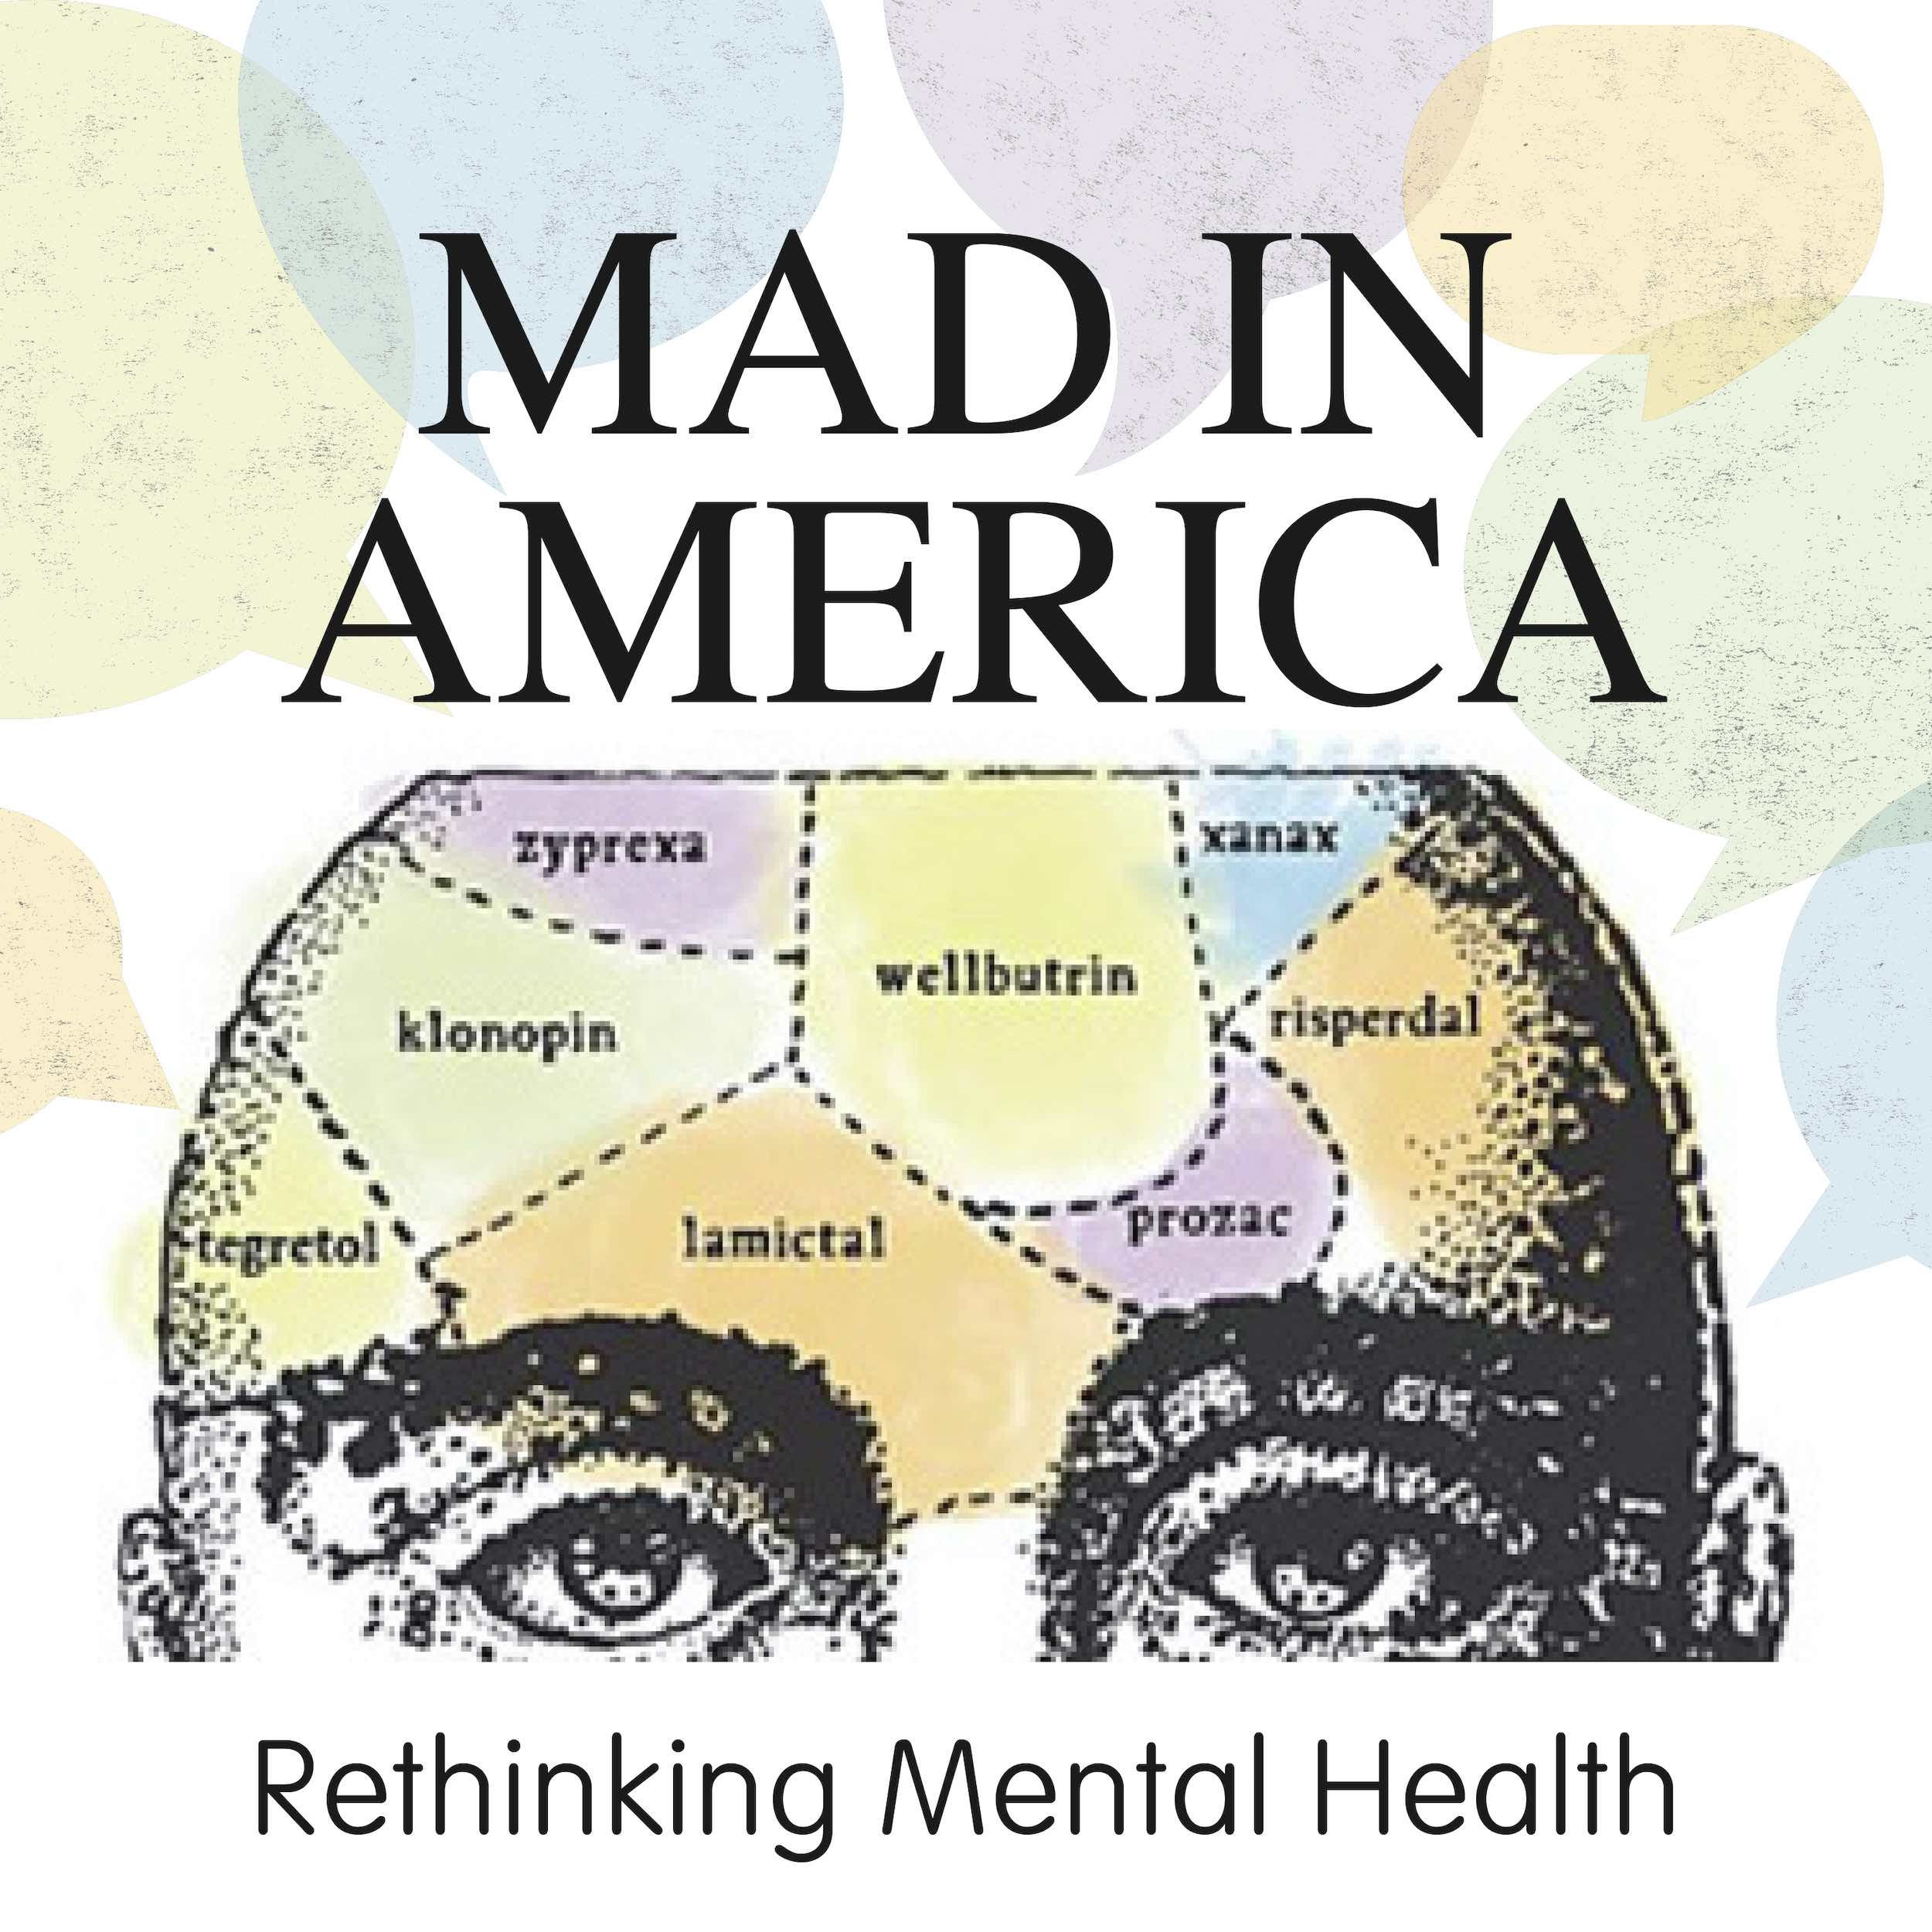 Mad in America: Rethinking Mental Health - Laysha Ostrow - Live and Learn